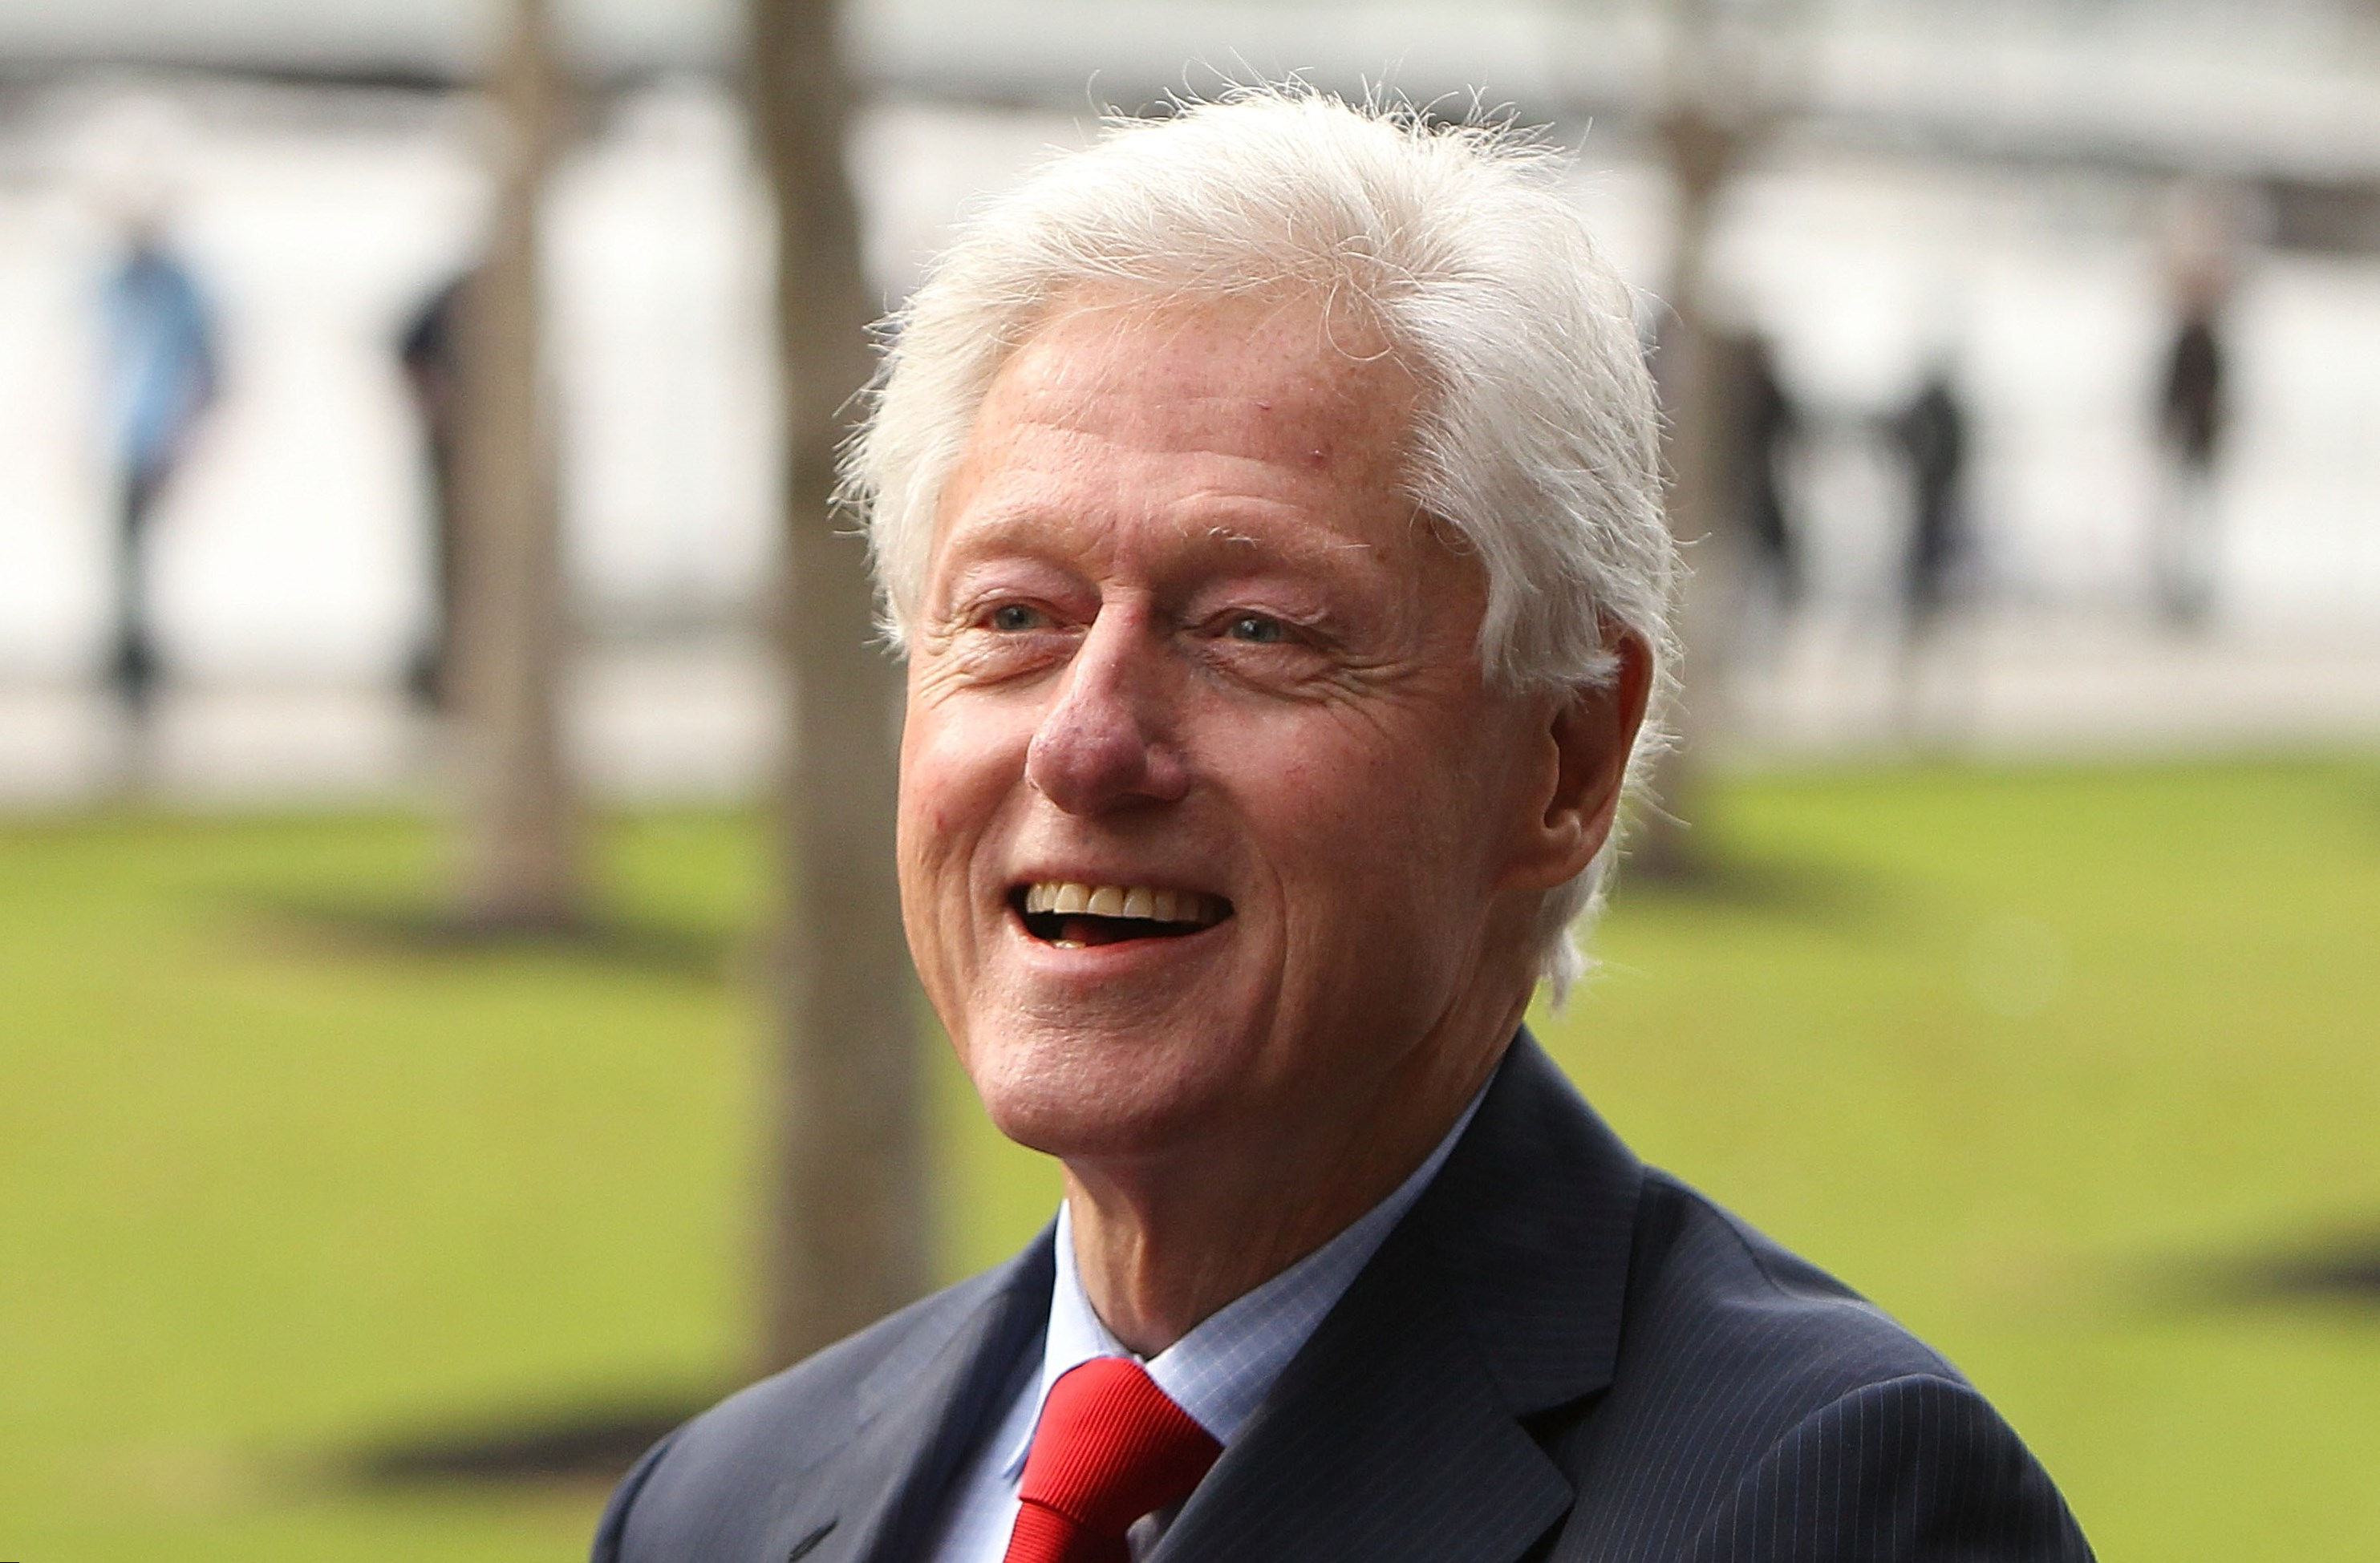 Bill Clinton Height, Weight, Age